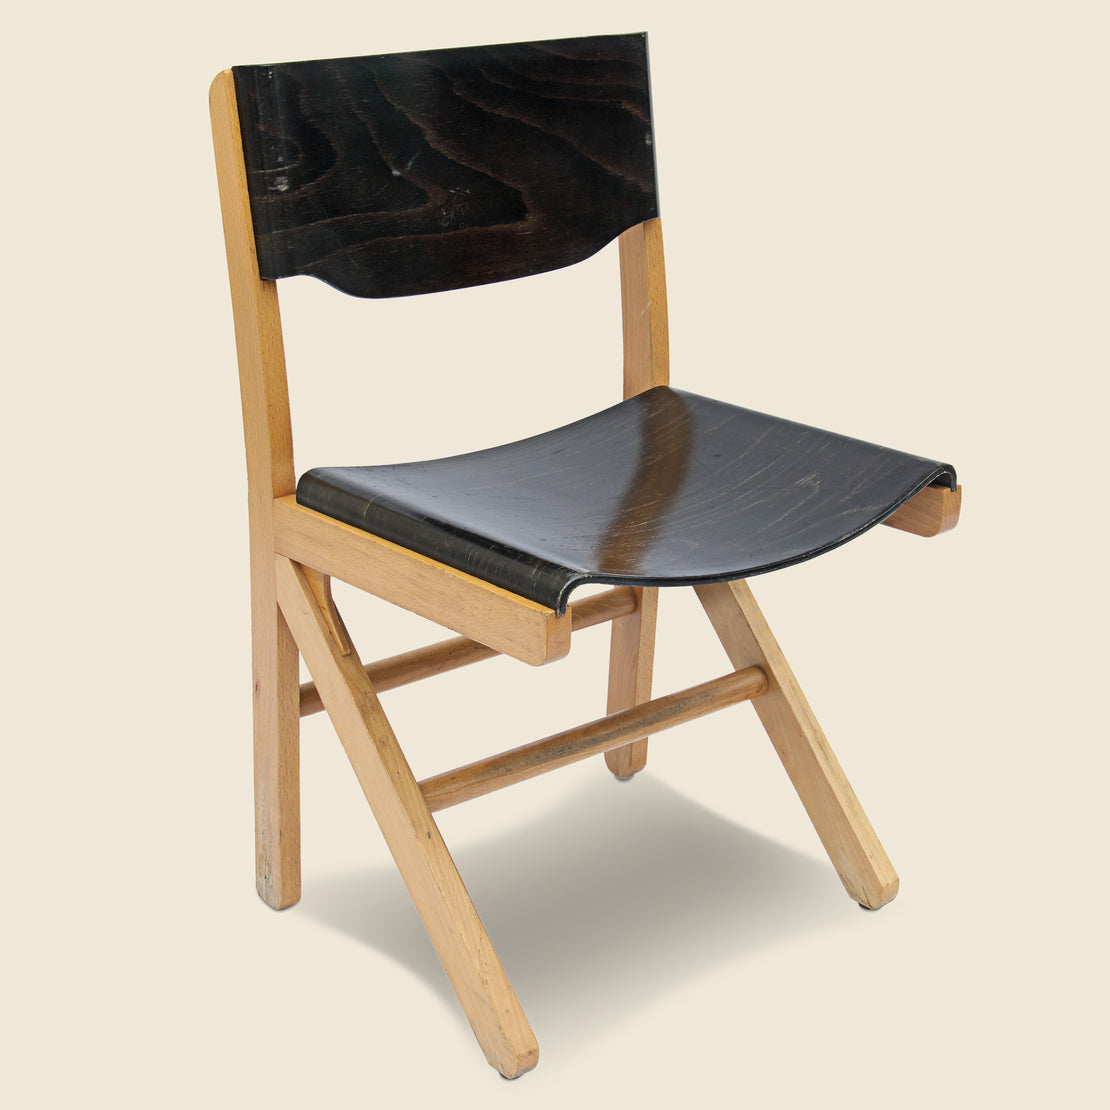 Vintage English Industrial Plywood Chair - Black